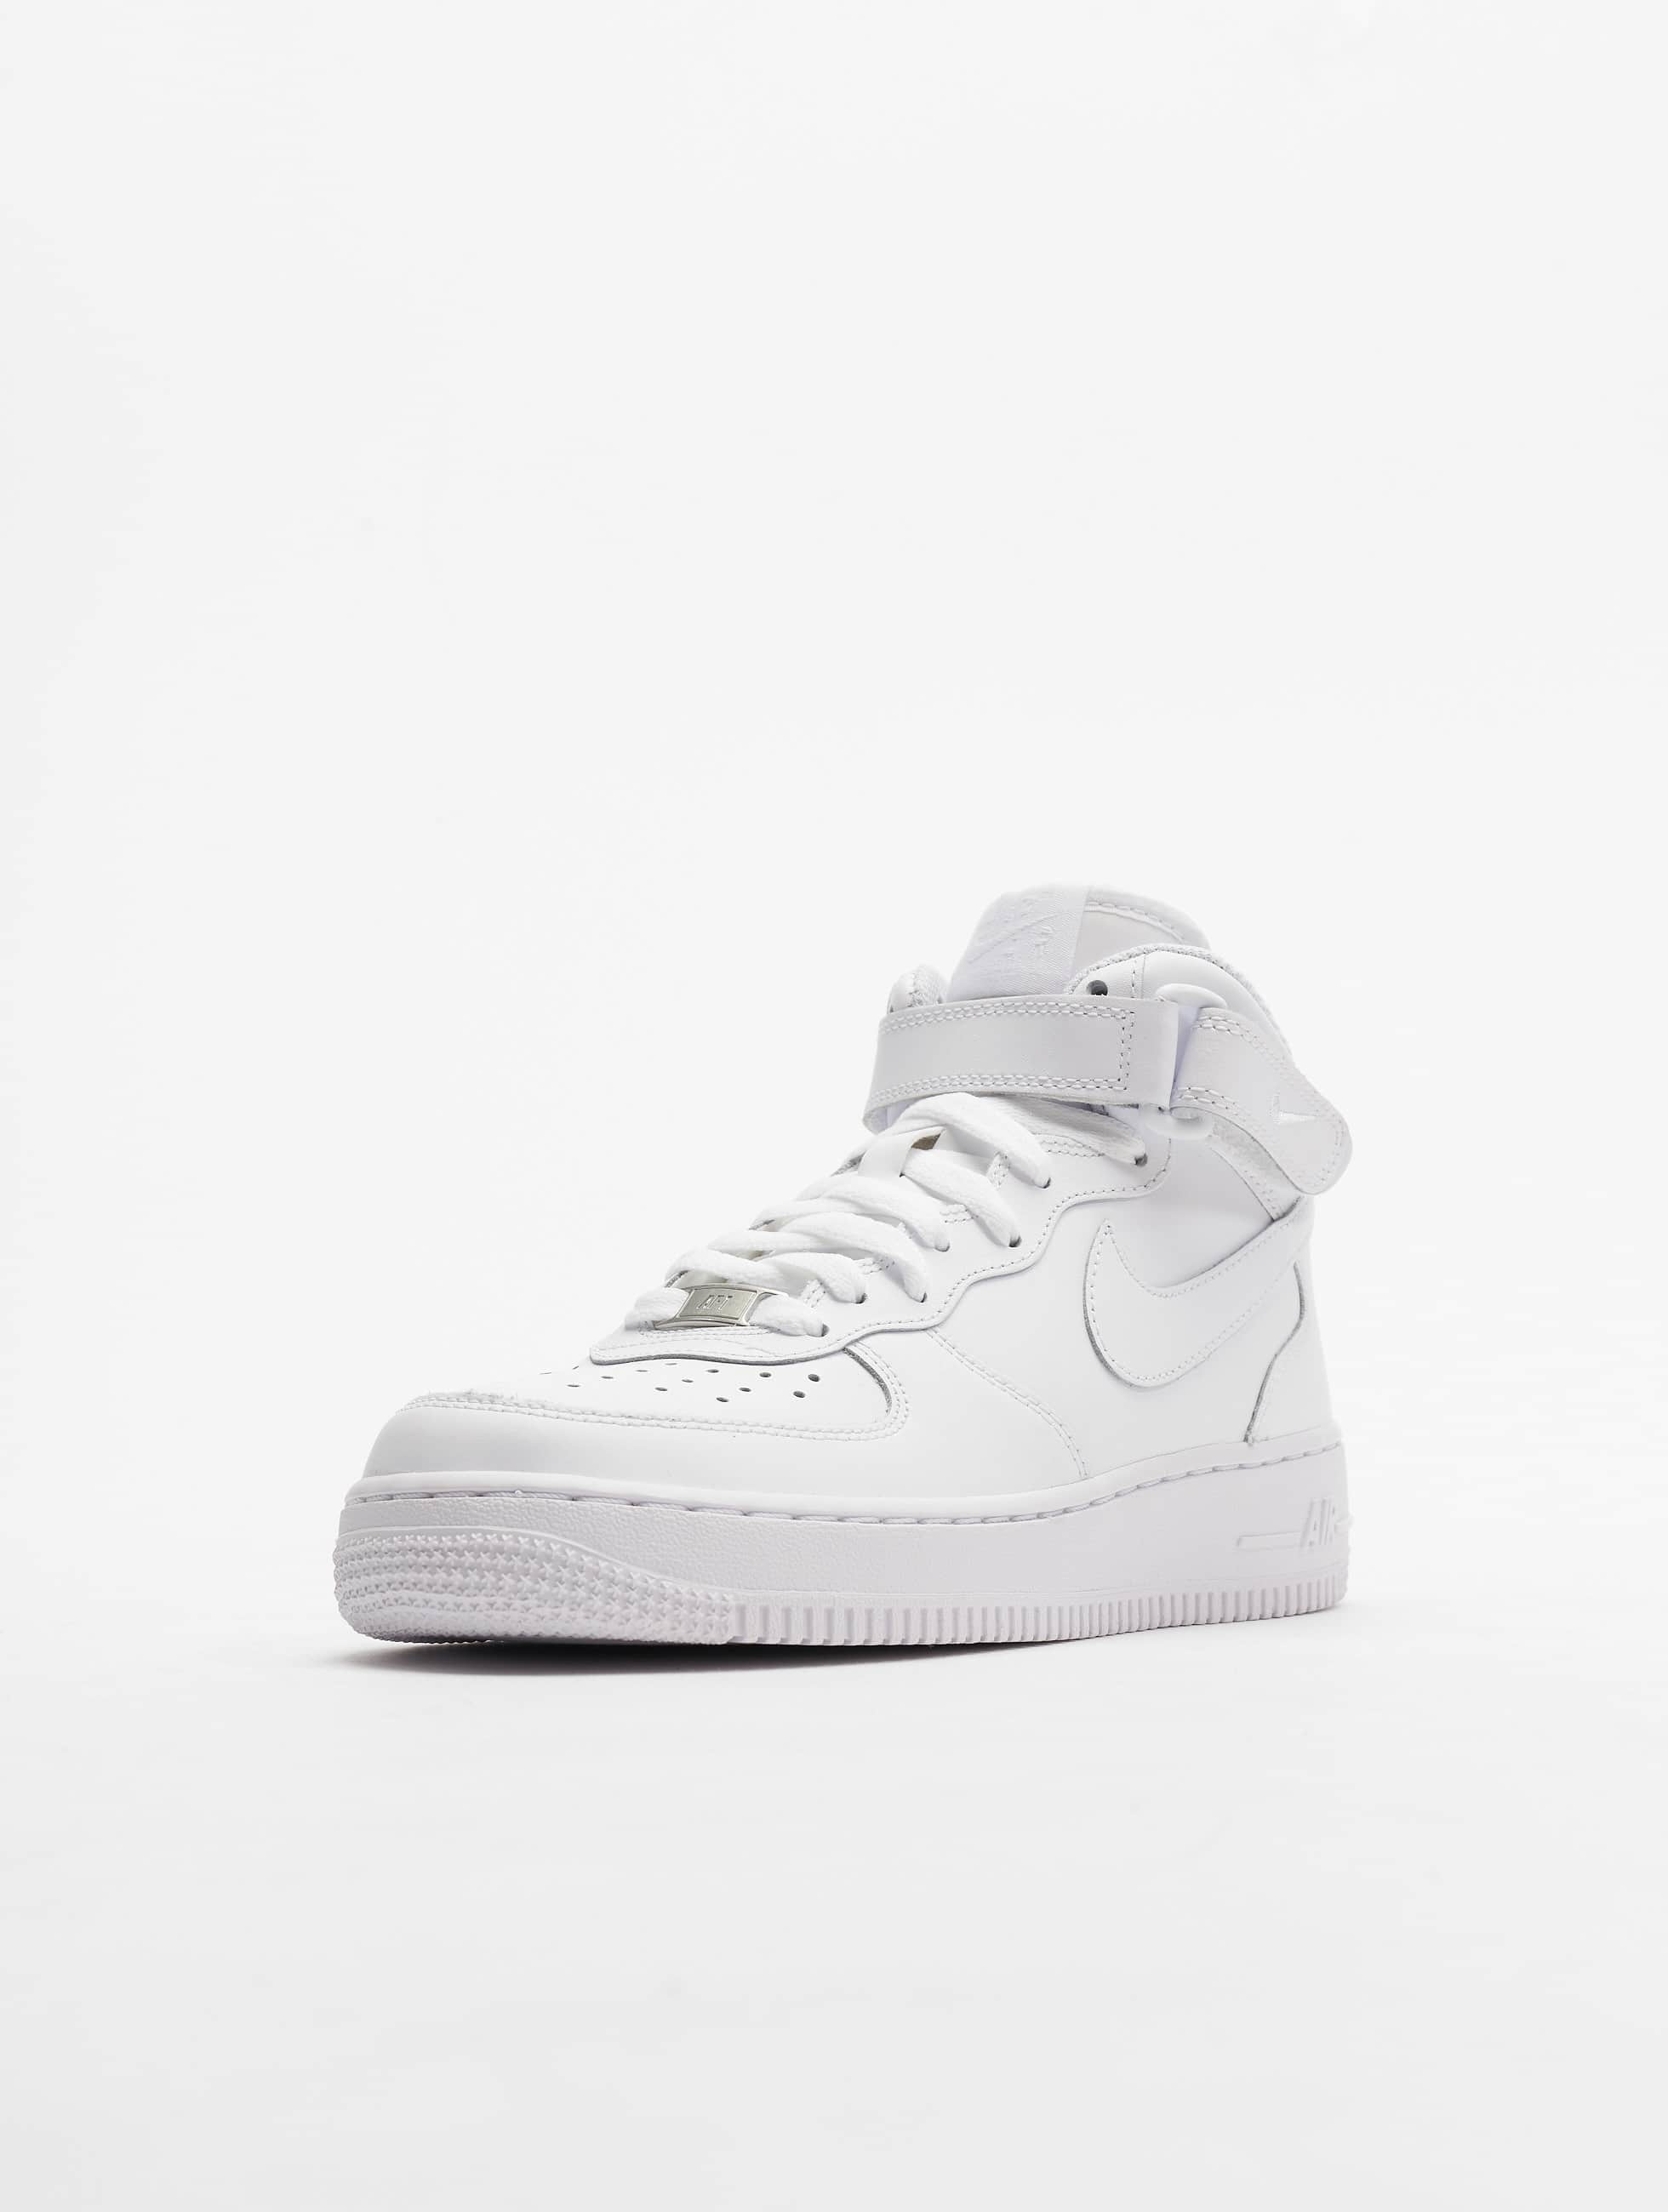 buy popular 7257f bdb53 Nike Air Force 1 Mid Blanche Baskets Bébé nike air max healthwalker v, plus  - nike air force blanche montante, ...